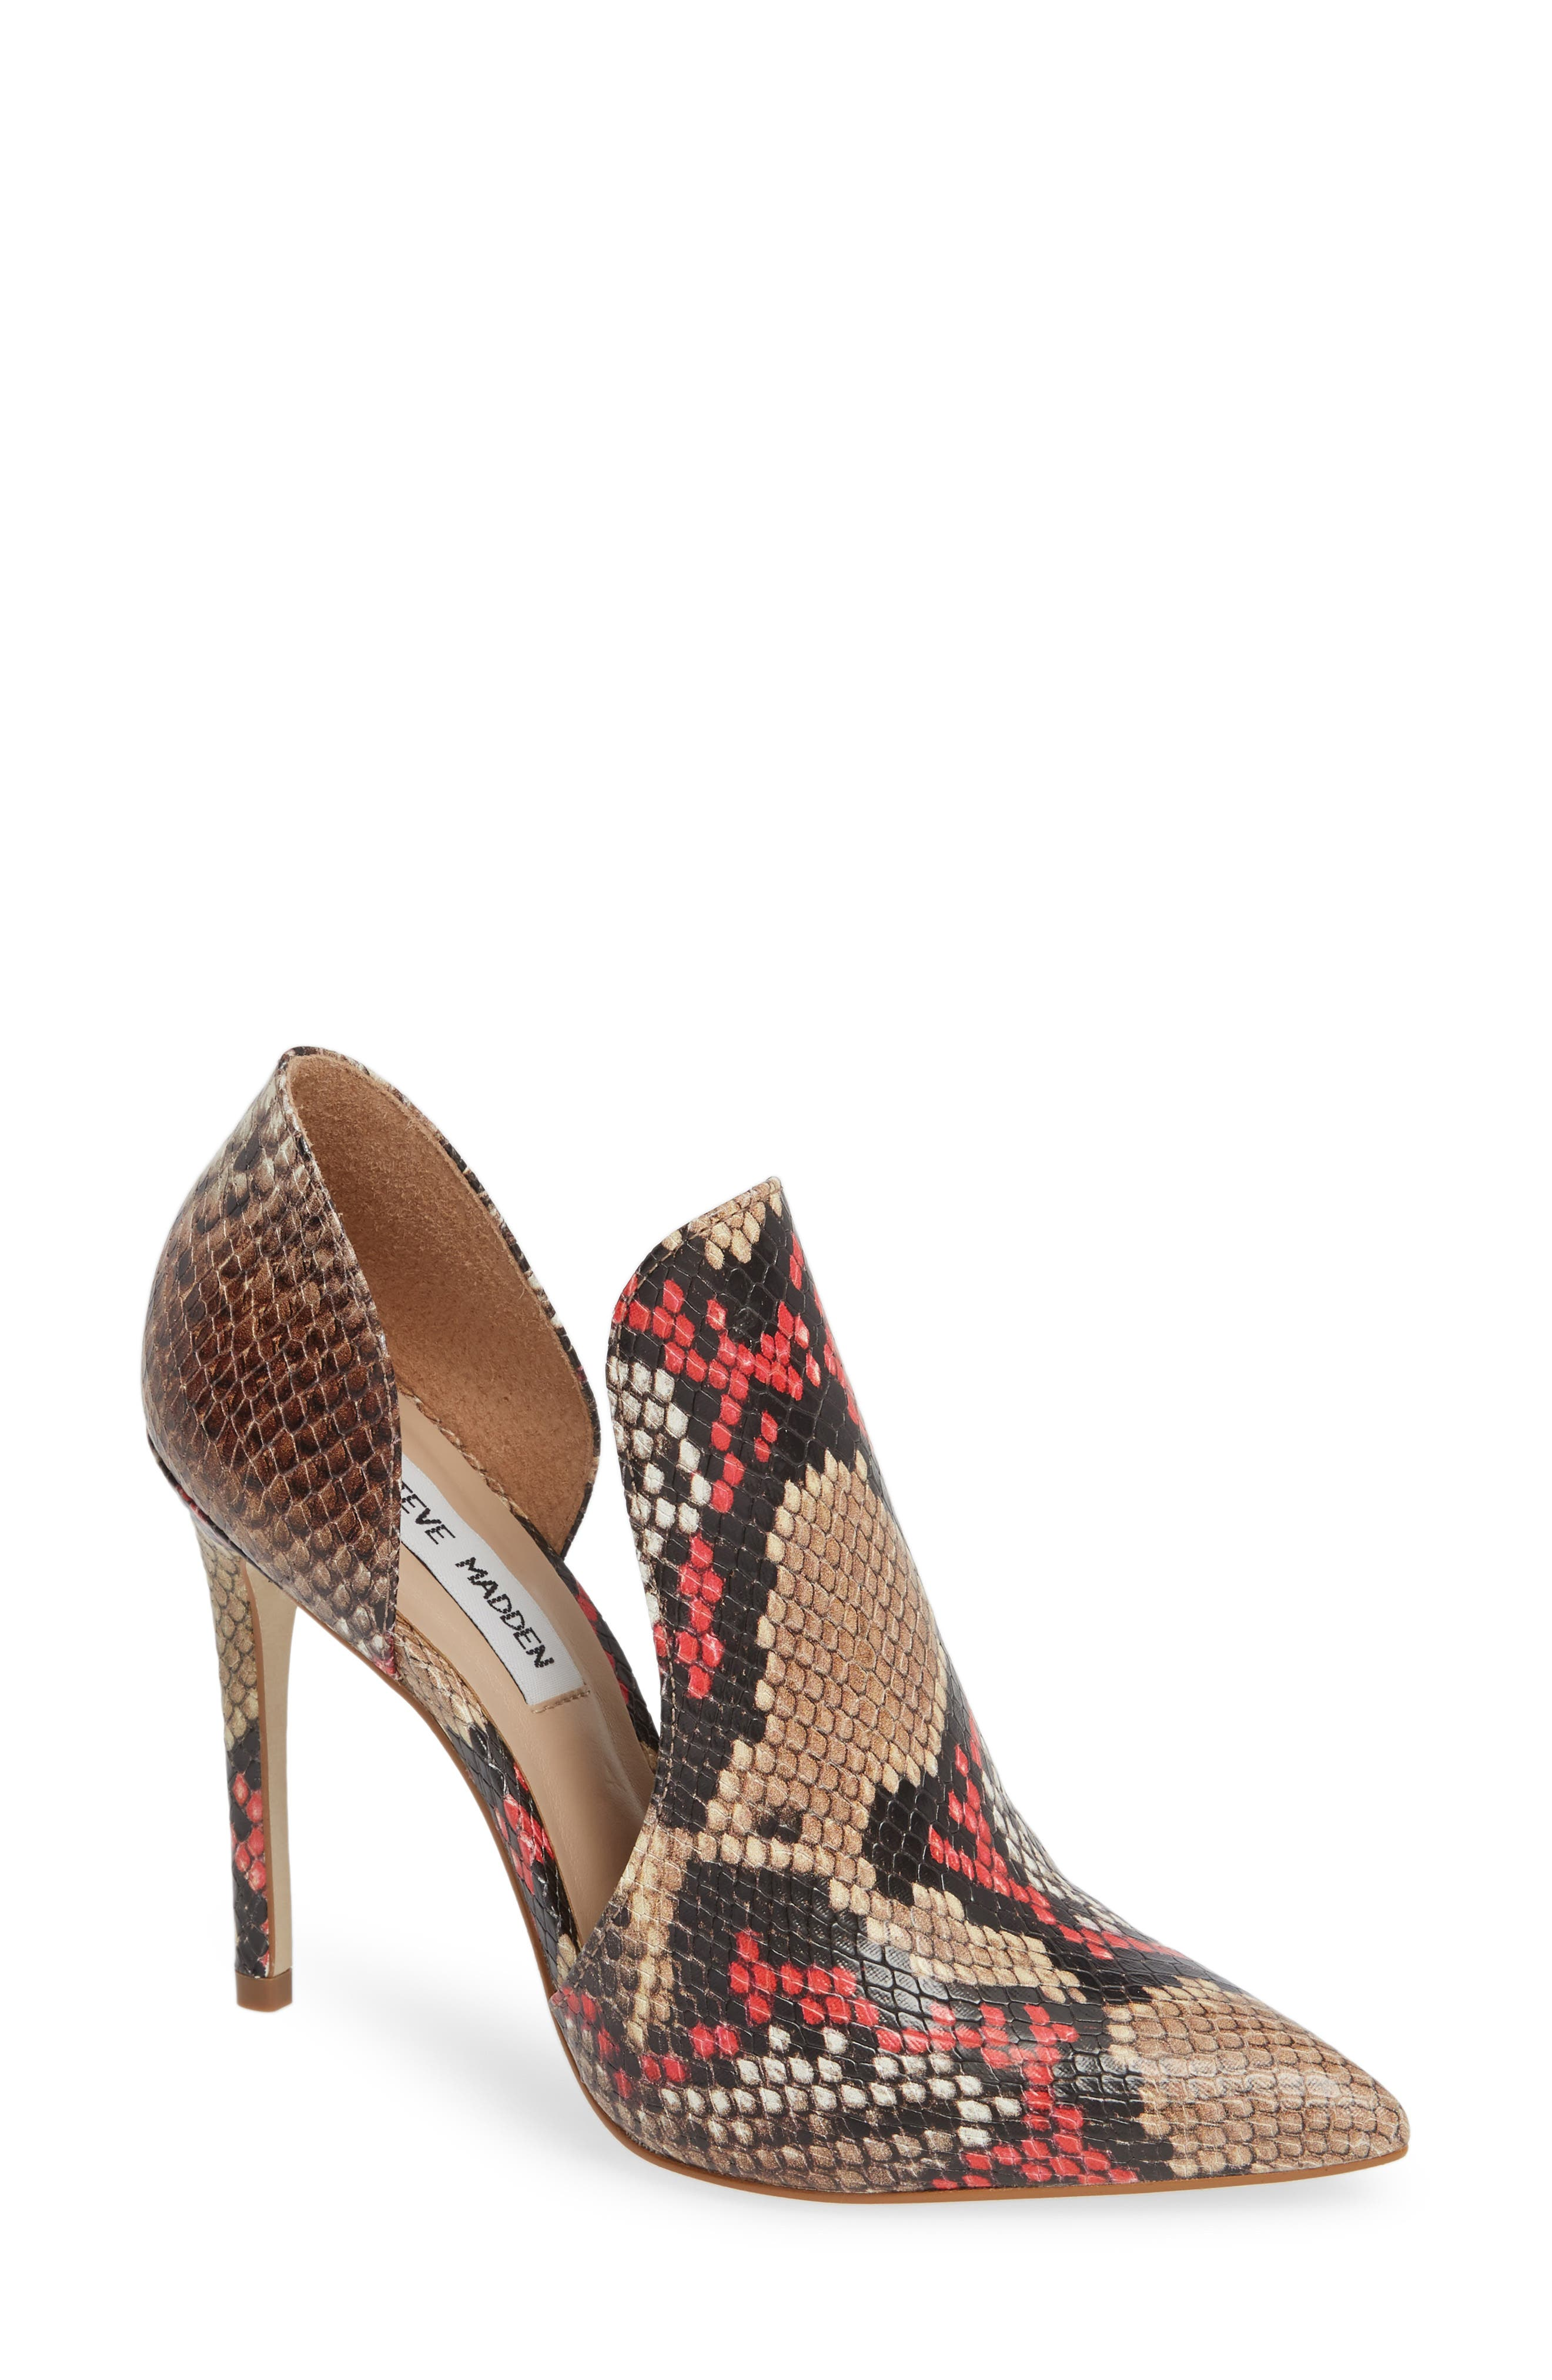 STEVE MADDEN Dolly Pump, Main, color, 600